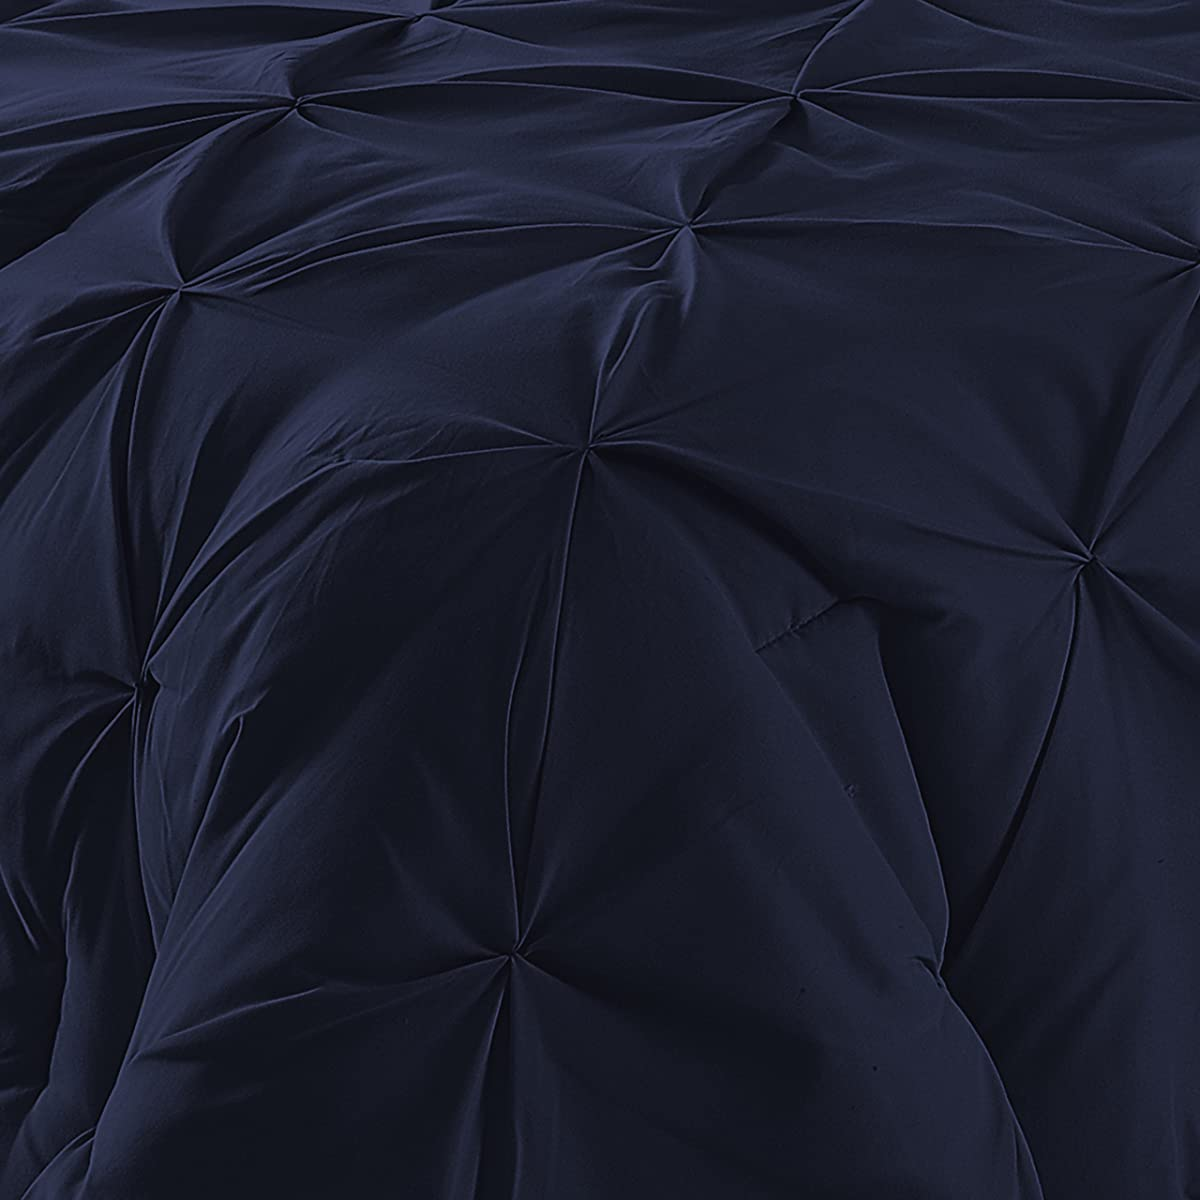 Double-Needle Durable Stitching Comfy Bedding 3-piece Pinch Pleat Comforter Set (King, Navy Blue)